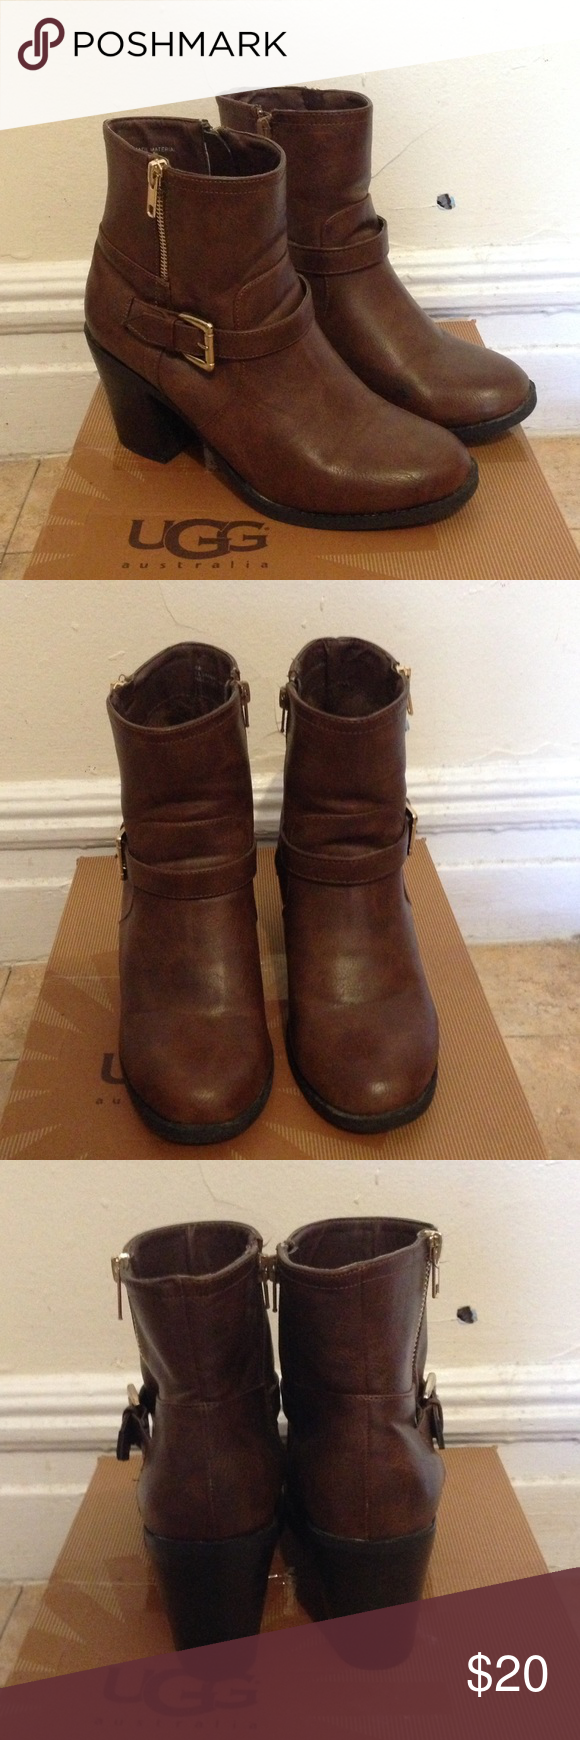 """Brown Booties with Gold Details Excellent conditions no scuffs, barely used these. The heel is about 3"""" and they look amazing with skinny jeans, perfect for a fall outfit Shoes Ankle Boots & Booties"""